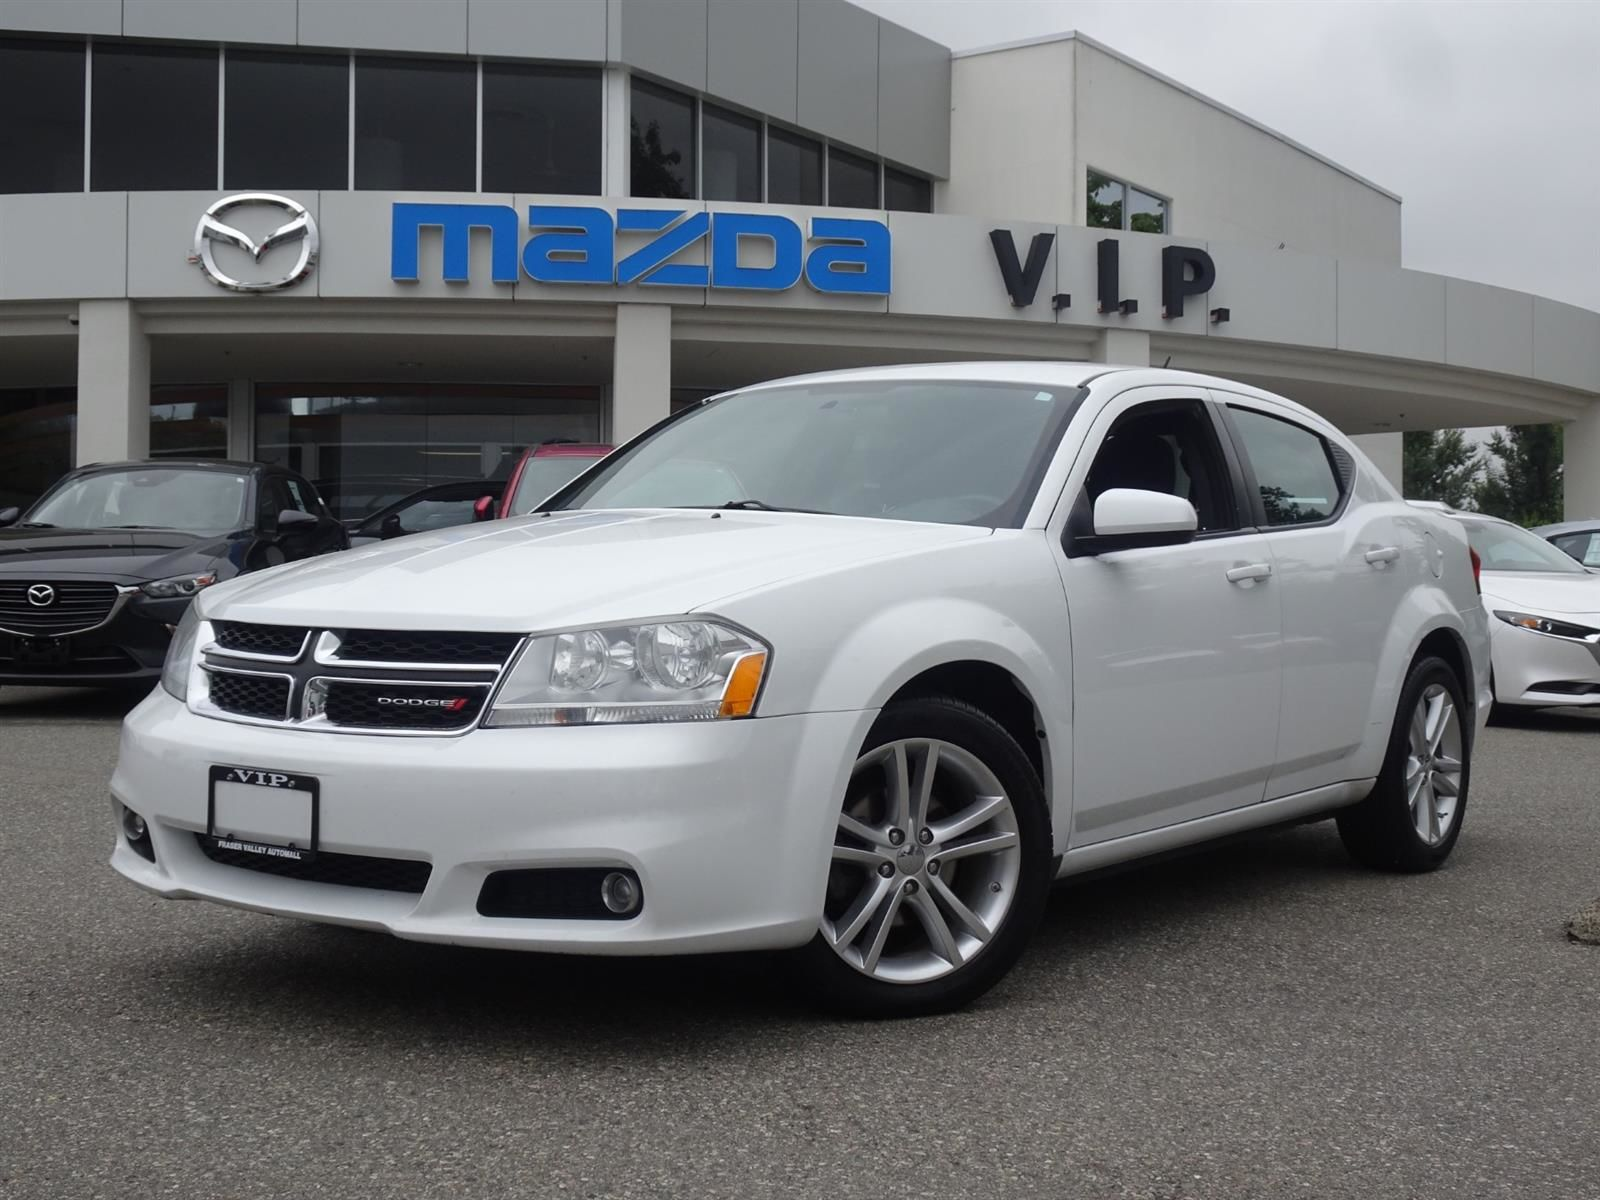 Vip Mazda Pre Owned 2013 Dodge Avenger Sxt Nice Clean And Accident Free A Very Nice Looking Ride For Sale